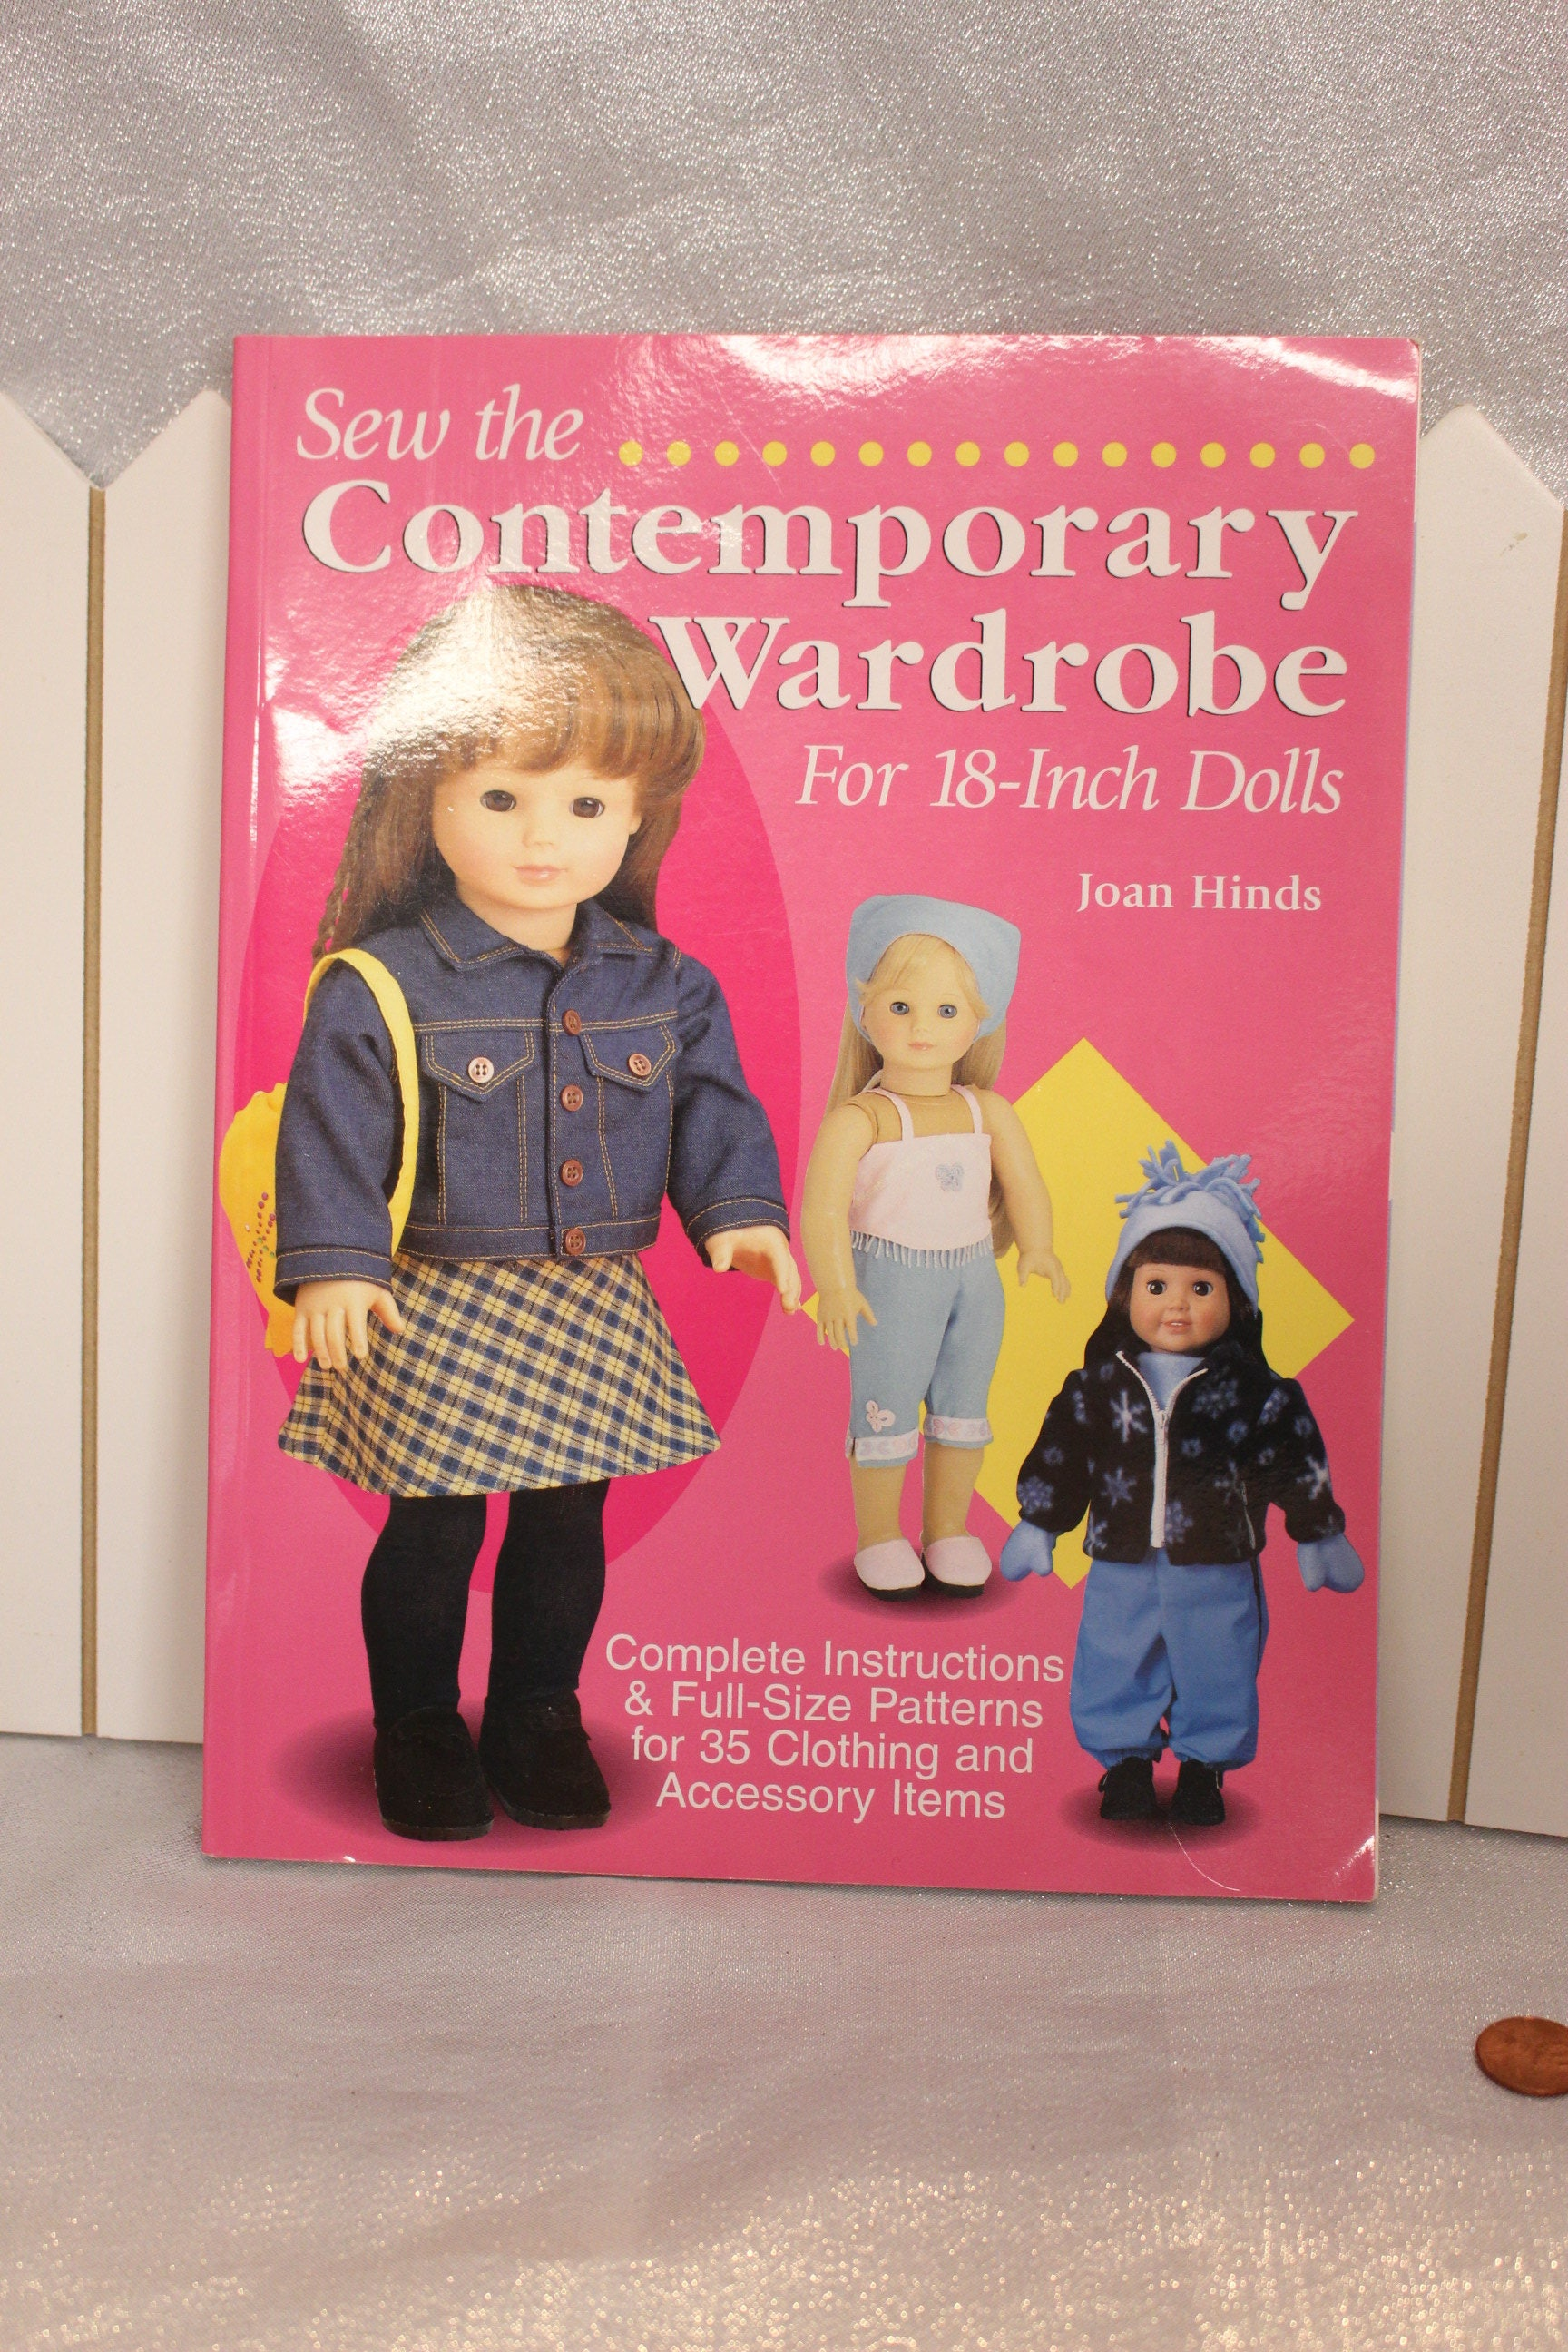 Sew the Contemporary Wardrobe for 18 Inch Dolls by Joan Hinds